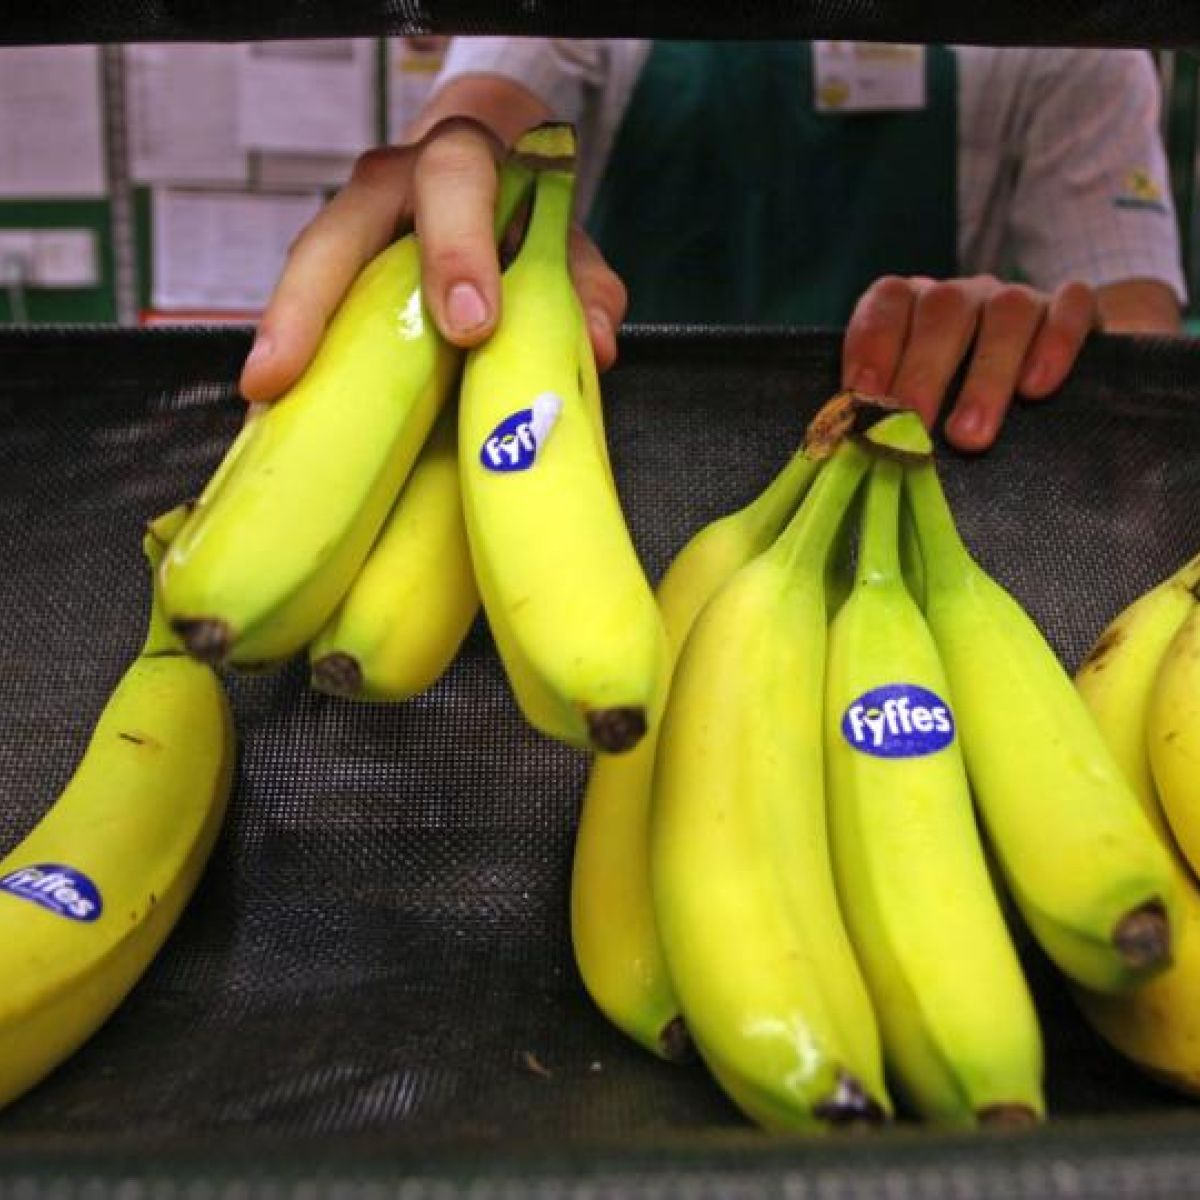 Fyffes merges with rival Chiquita to create world's biggest